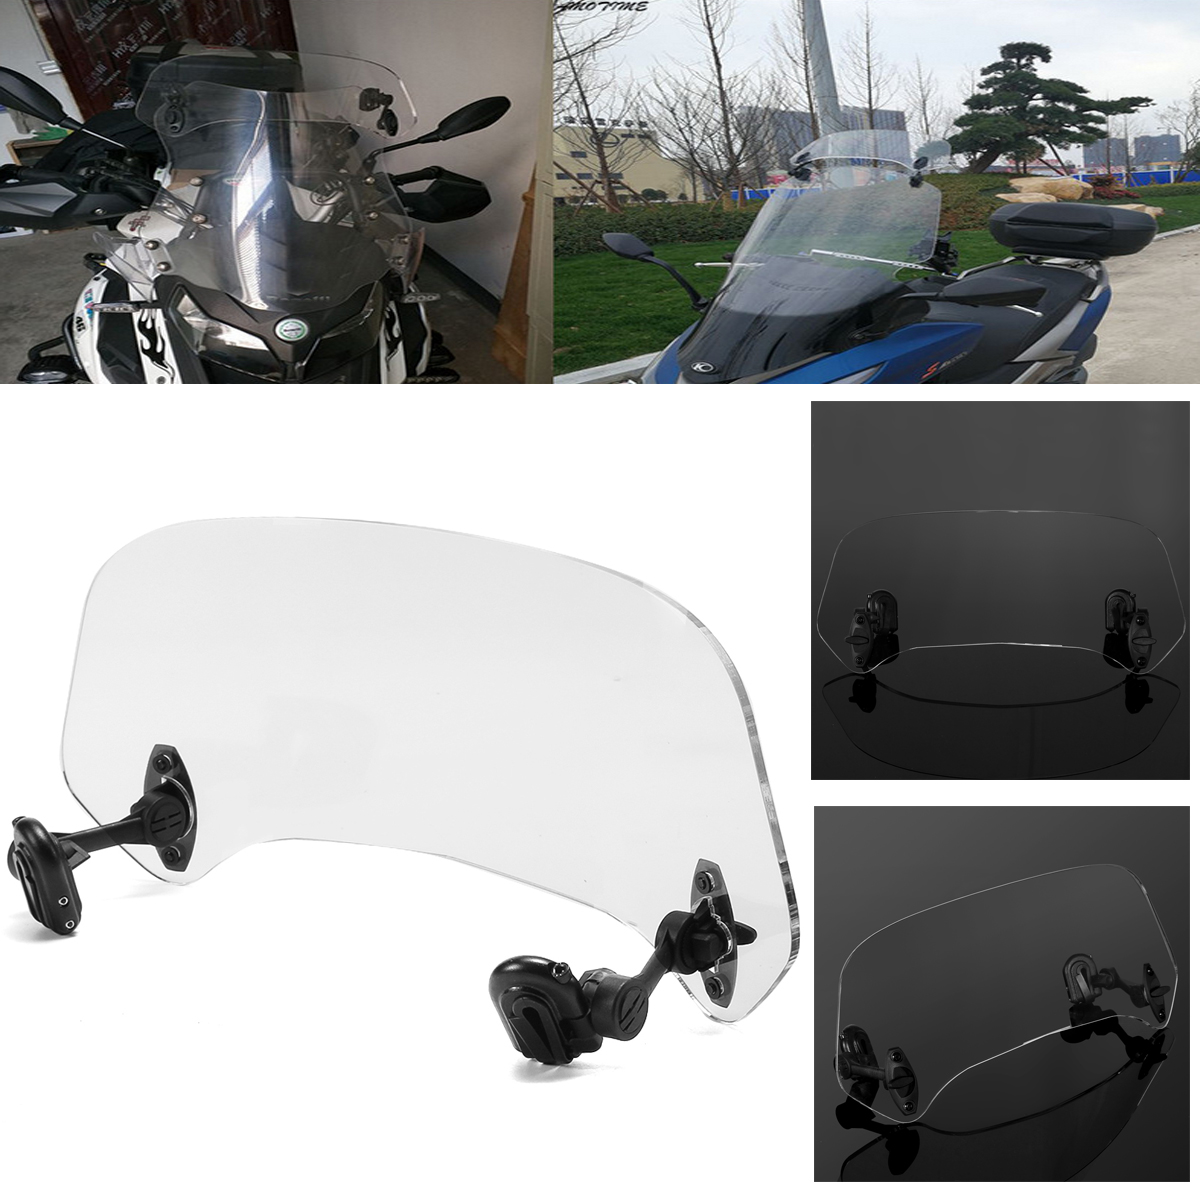 Motorcycle Risen Adjustable Wind Screen Windshield Extension Spoiler Air Deflector Wind Deflector for BMW Kawasaki Yamaha xyf8831 girls kids autumn winter down jackets 80